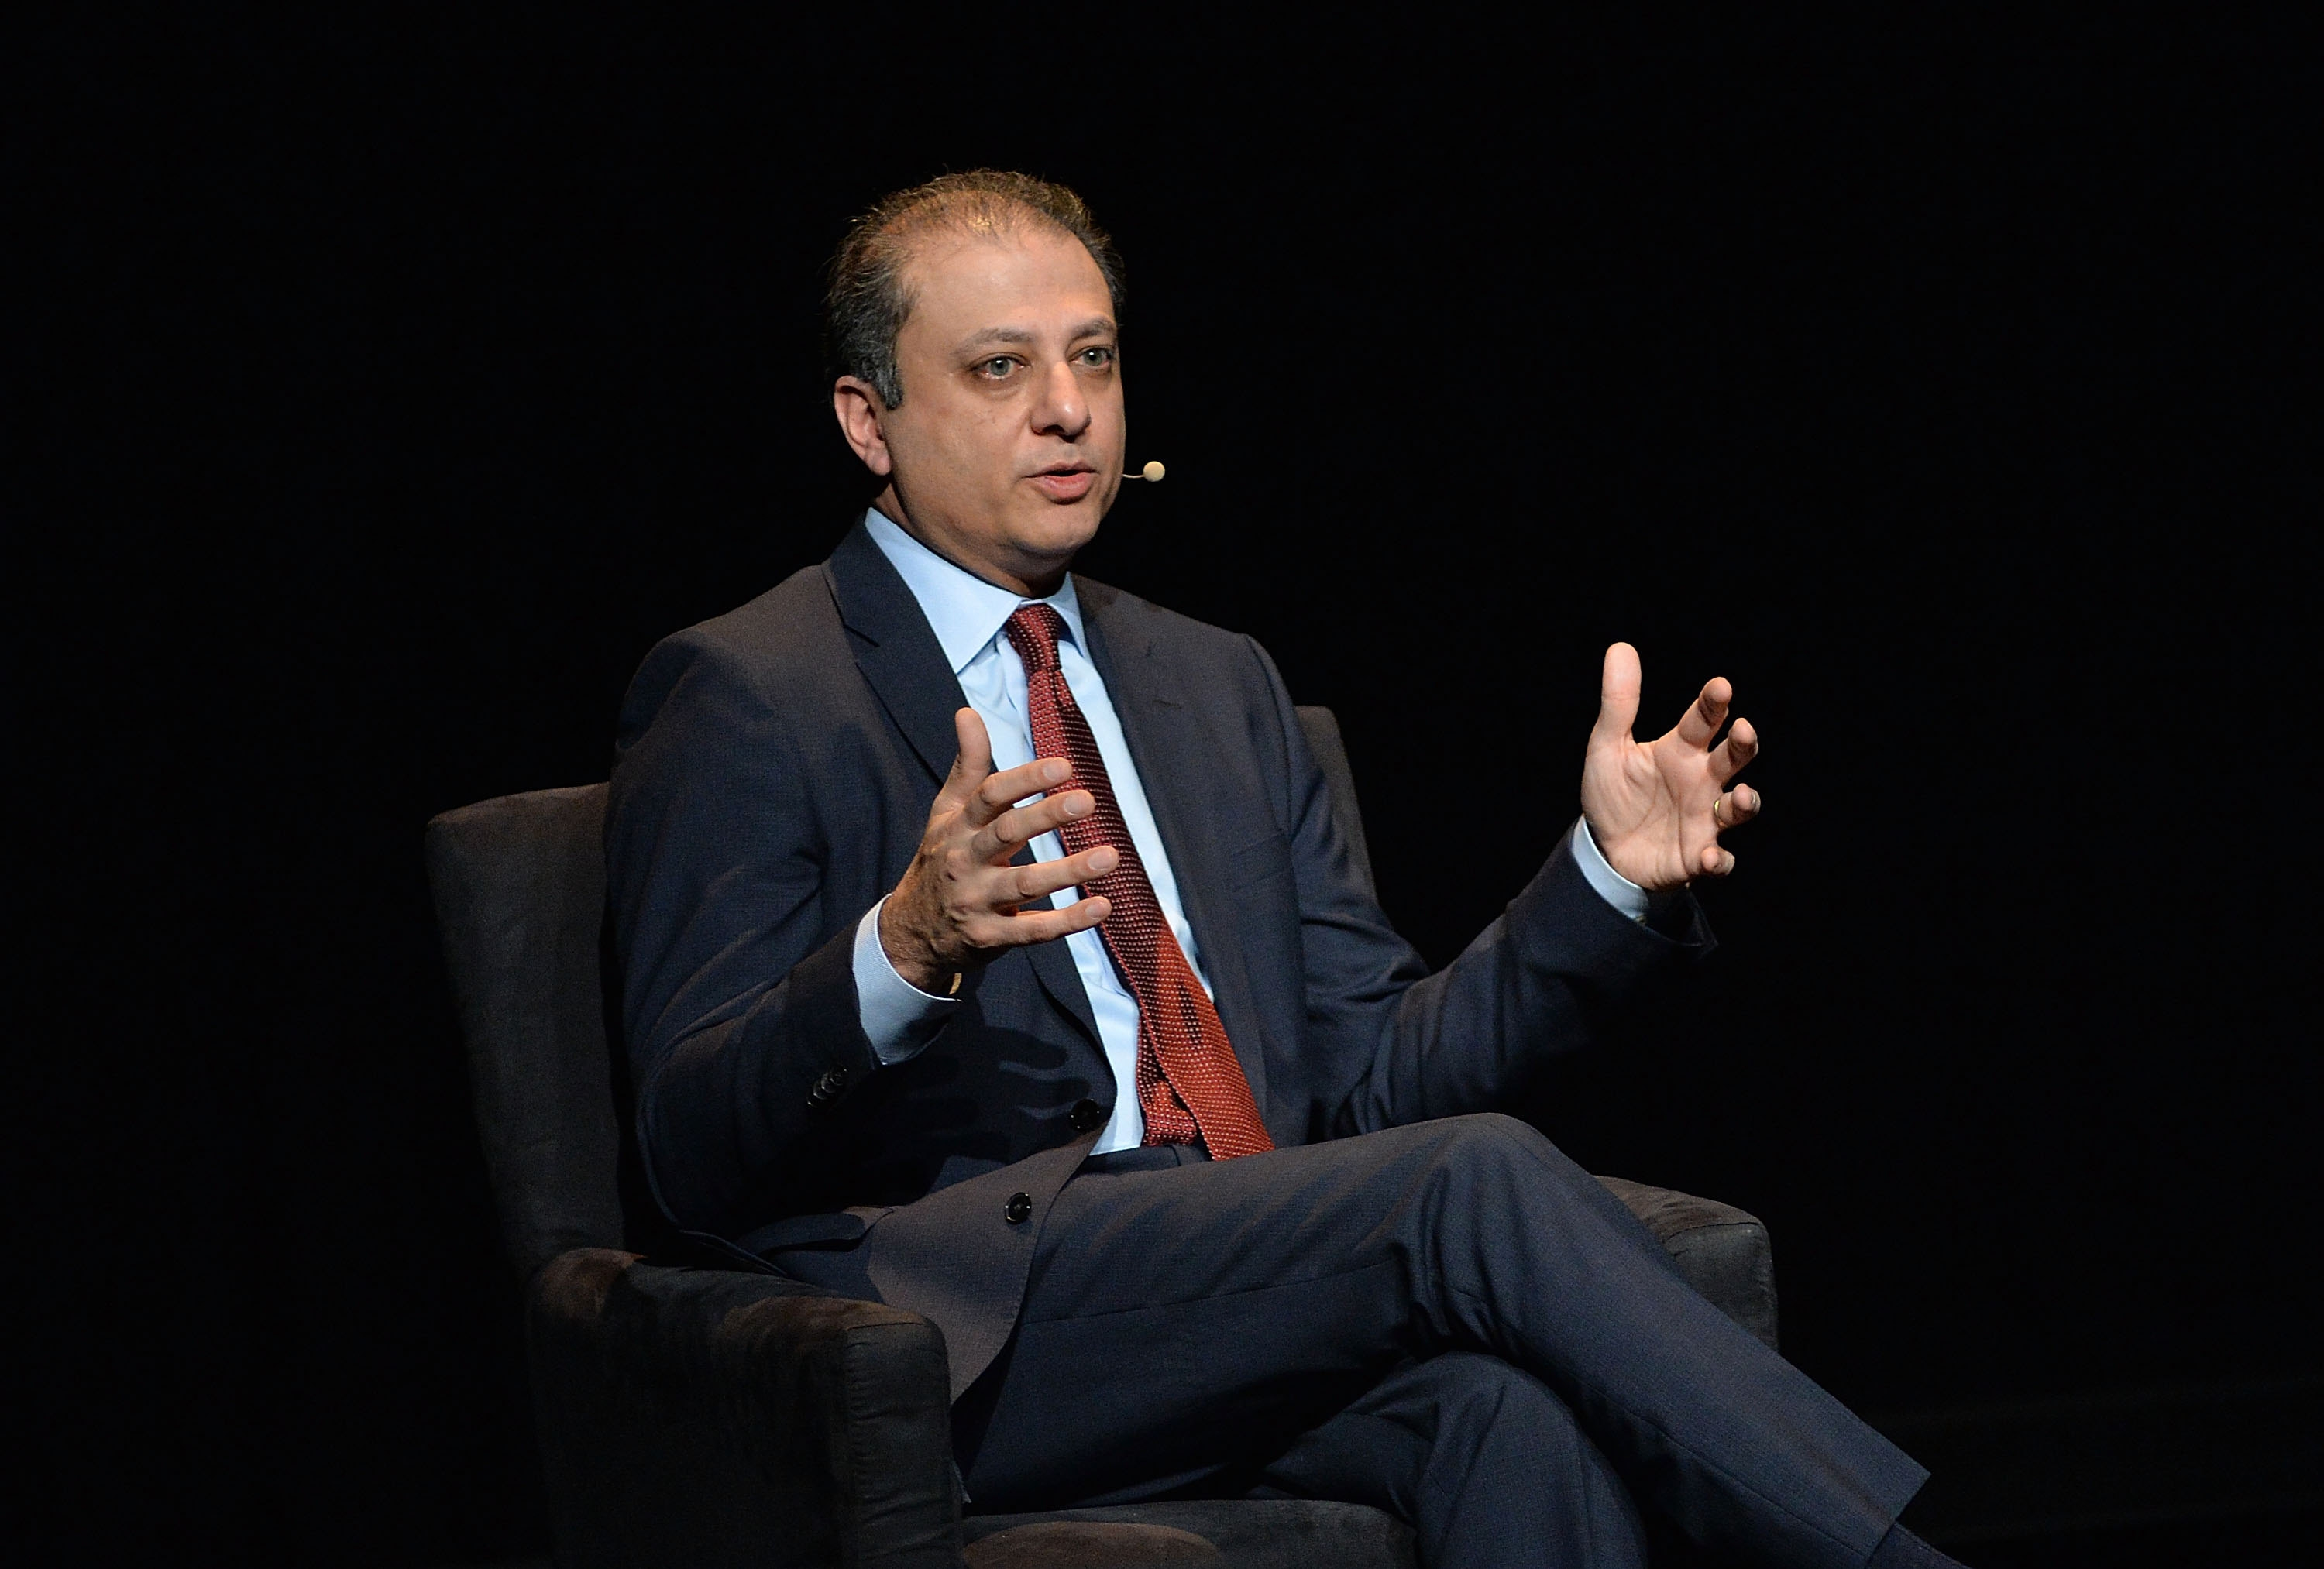 For Preet Bharara, role as U.S. attorney has rocked the Capitol.